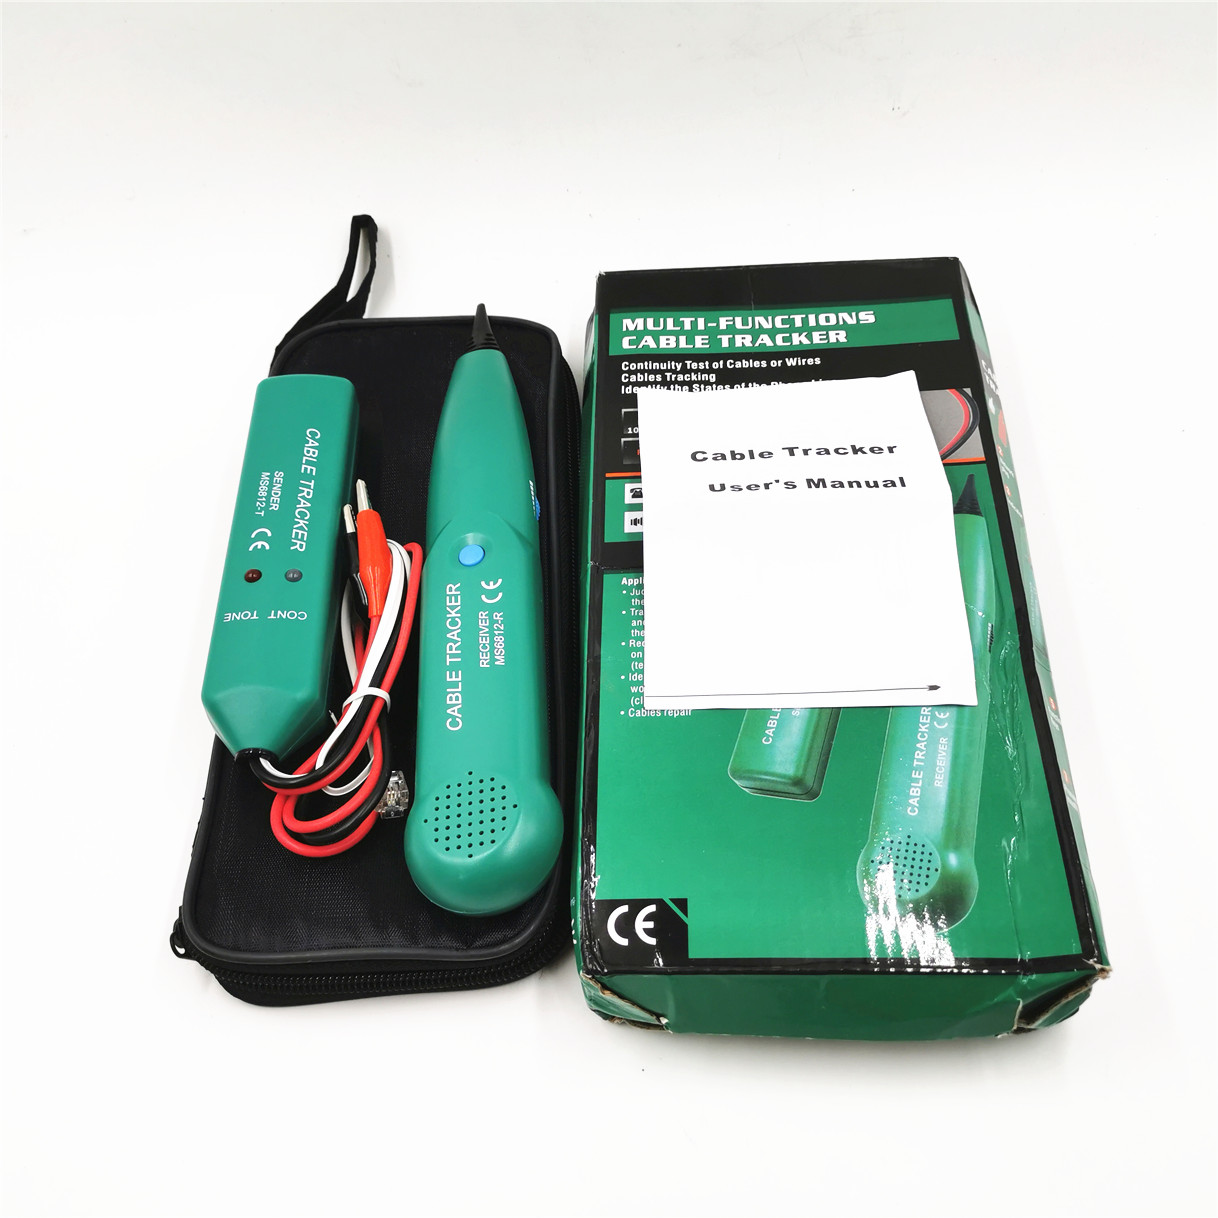 1 Pcs  MS6812 Wire Network Telephone Cable Tester Line Tracker With Carry Bag Telephone Networking Tools Wholesale